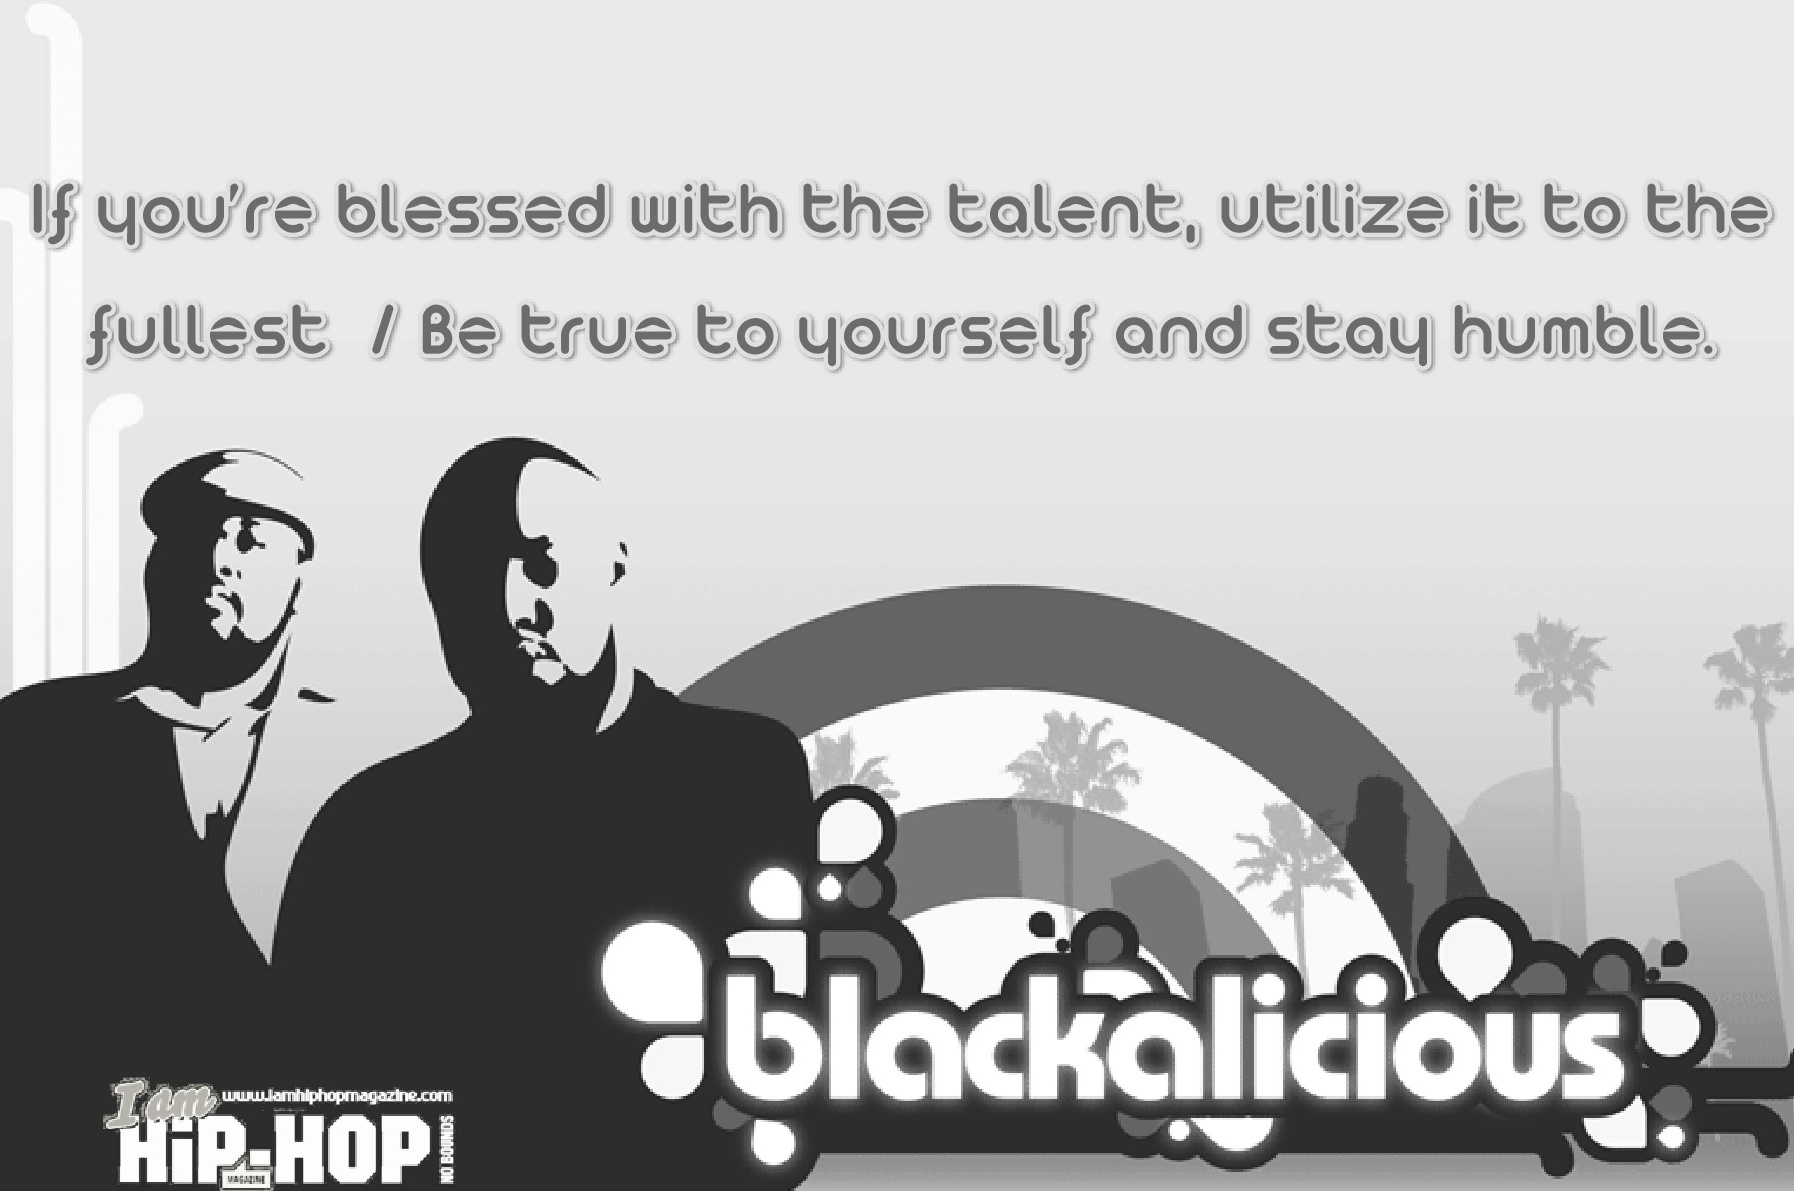 blacklicious i am hip hop